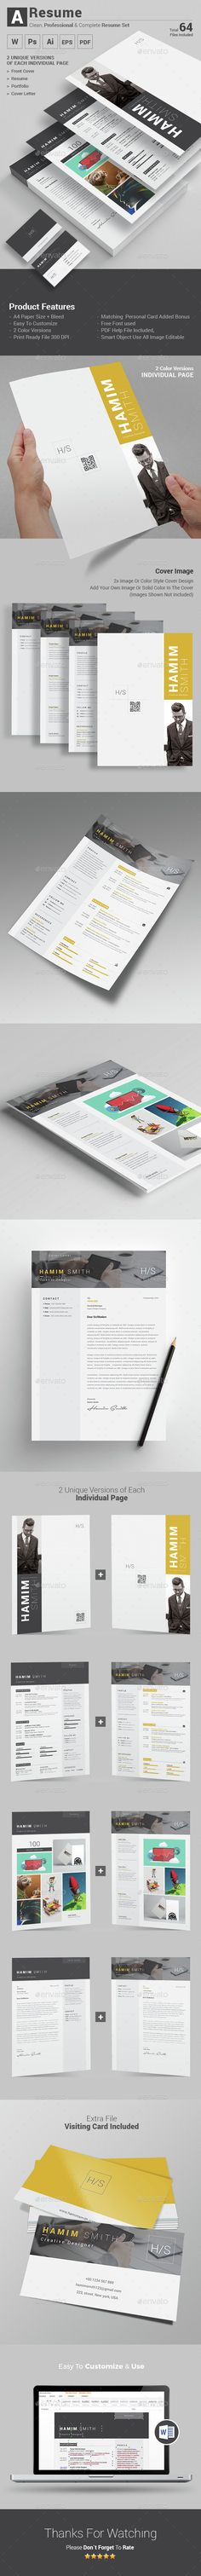 A Resume Set Templates PSD, Vector EPS, AI #design Download: http://graphicriver.net/item/a-resume-set/14512066?ref=ksioks